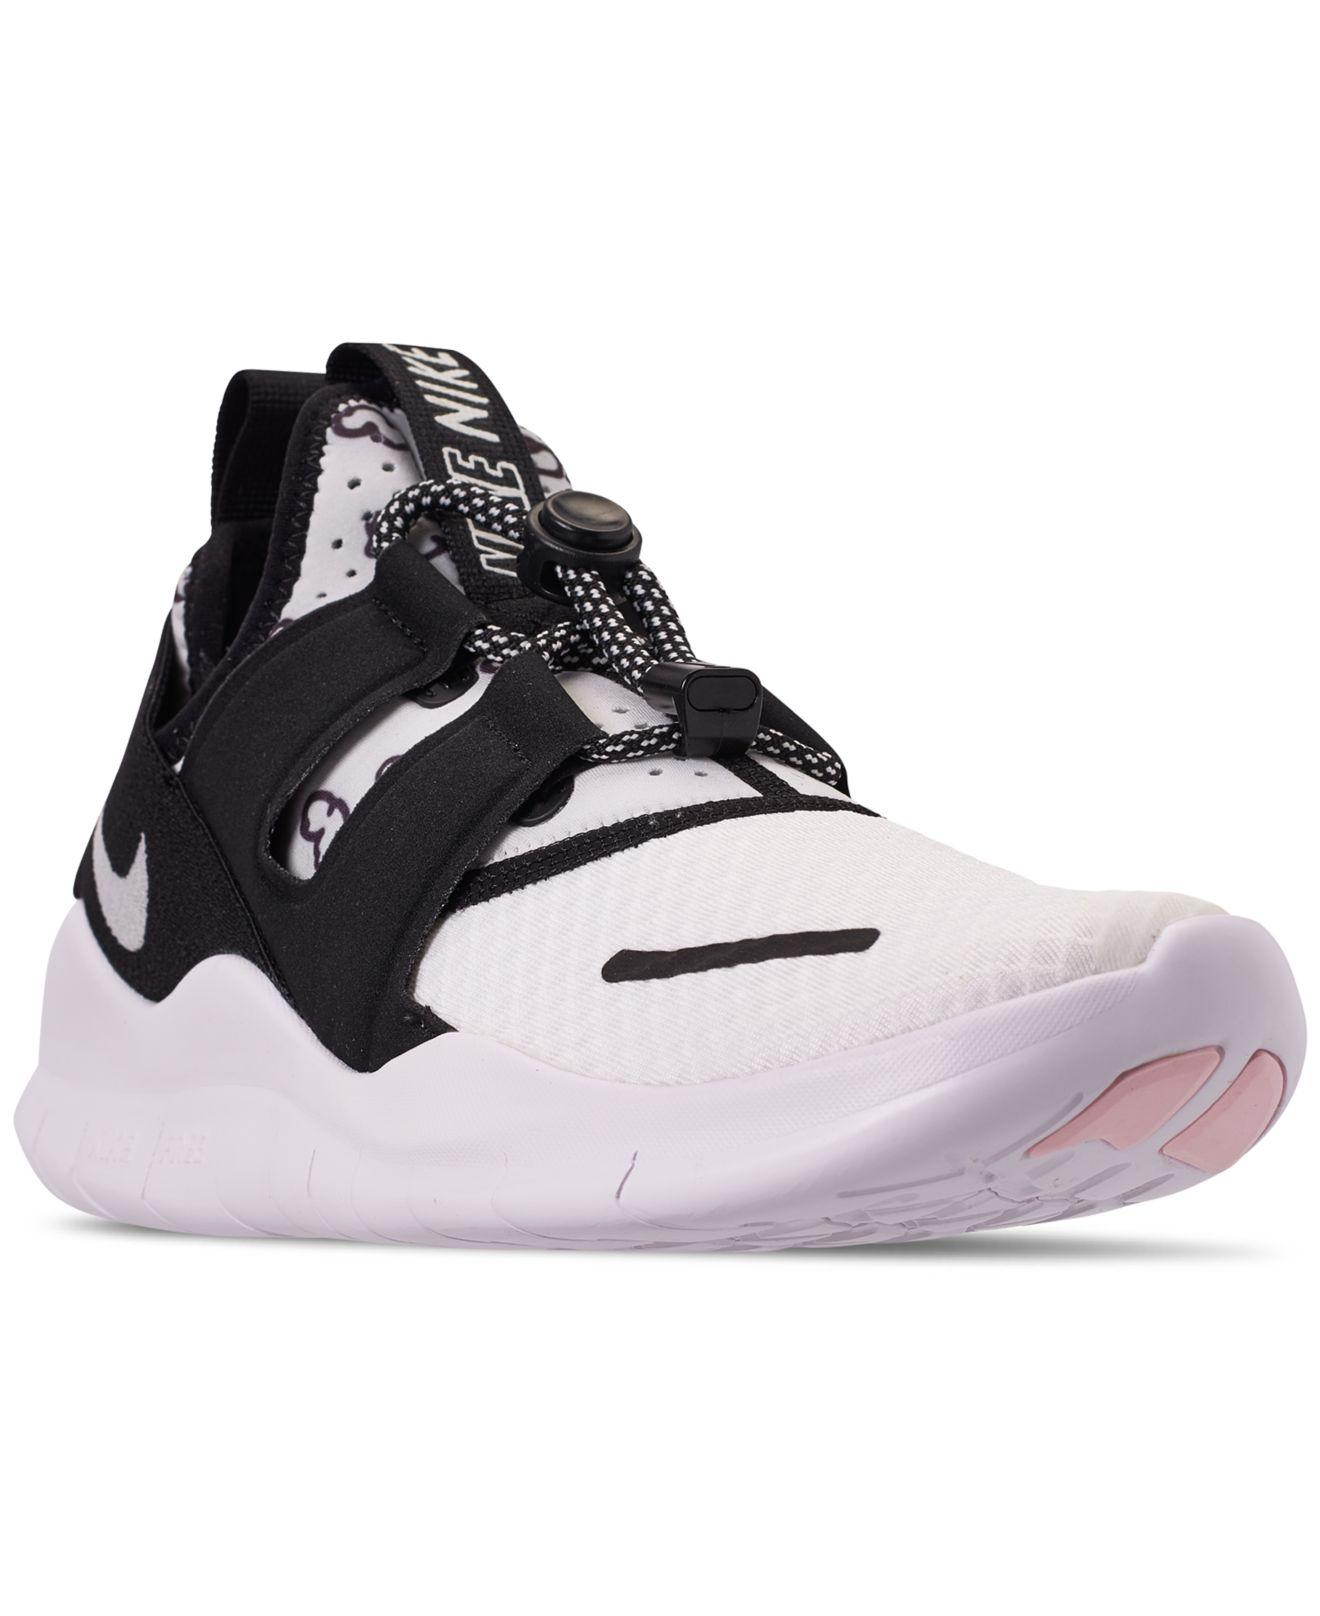 ad046c9bc51af Lyst - Nike Free Rn Commuter 2018 As Running Sneakers From Finish ...